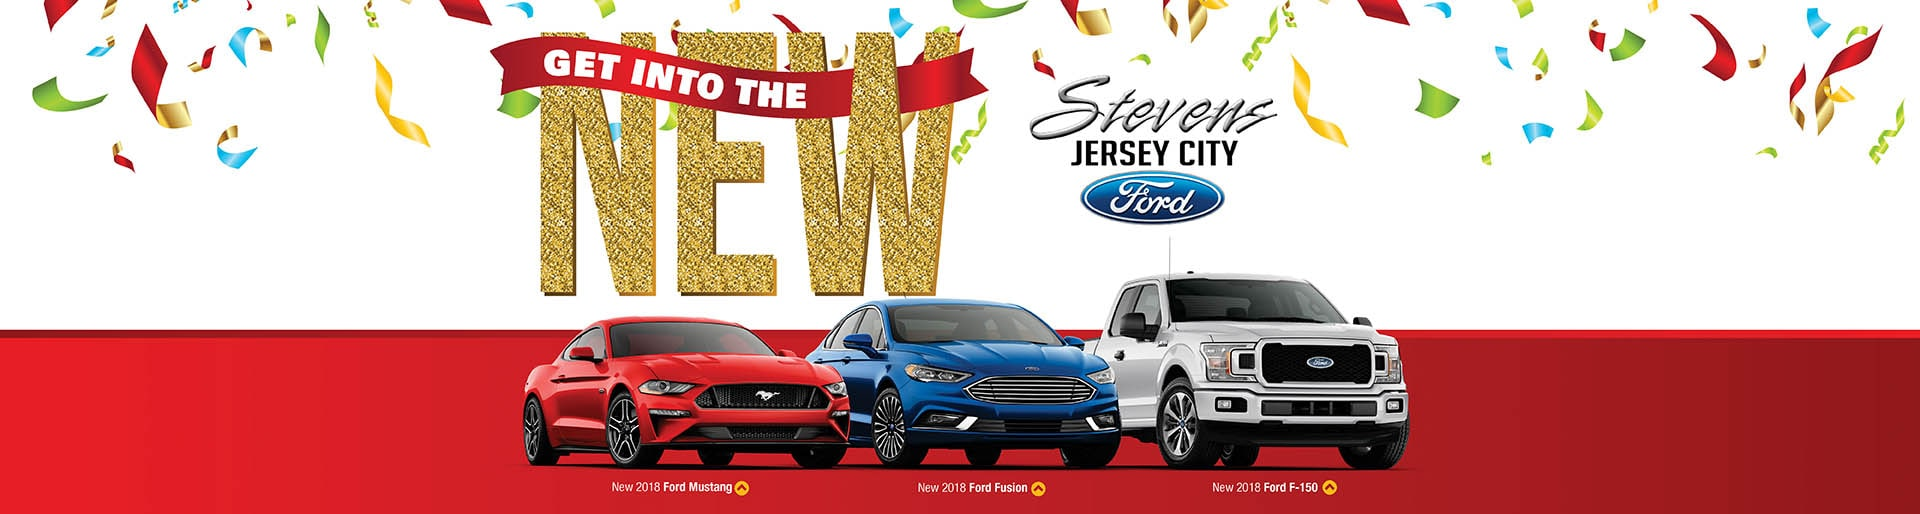 New And Used Ford Dealership Near Newark Stevens Of Jersey City 02 Mustang Fuel Filter Location Previous Next